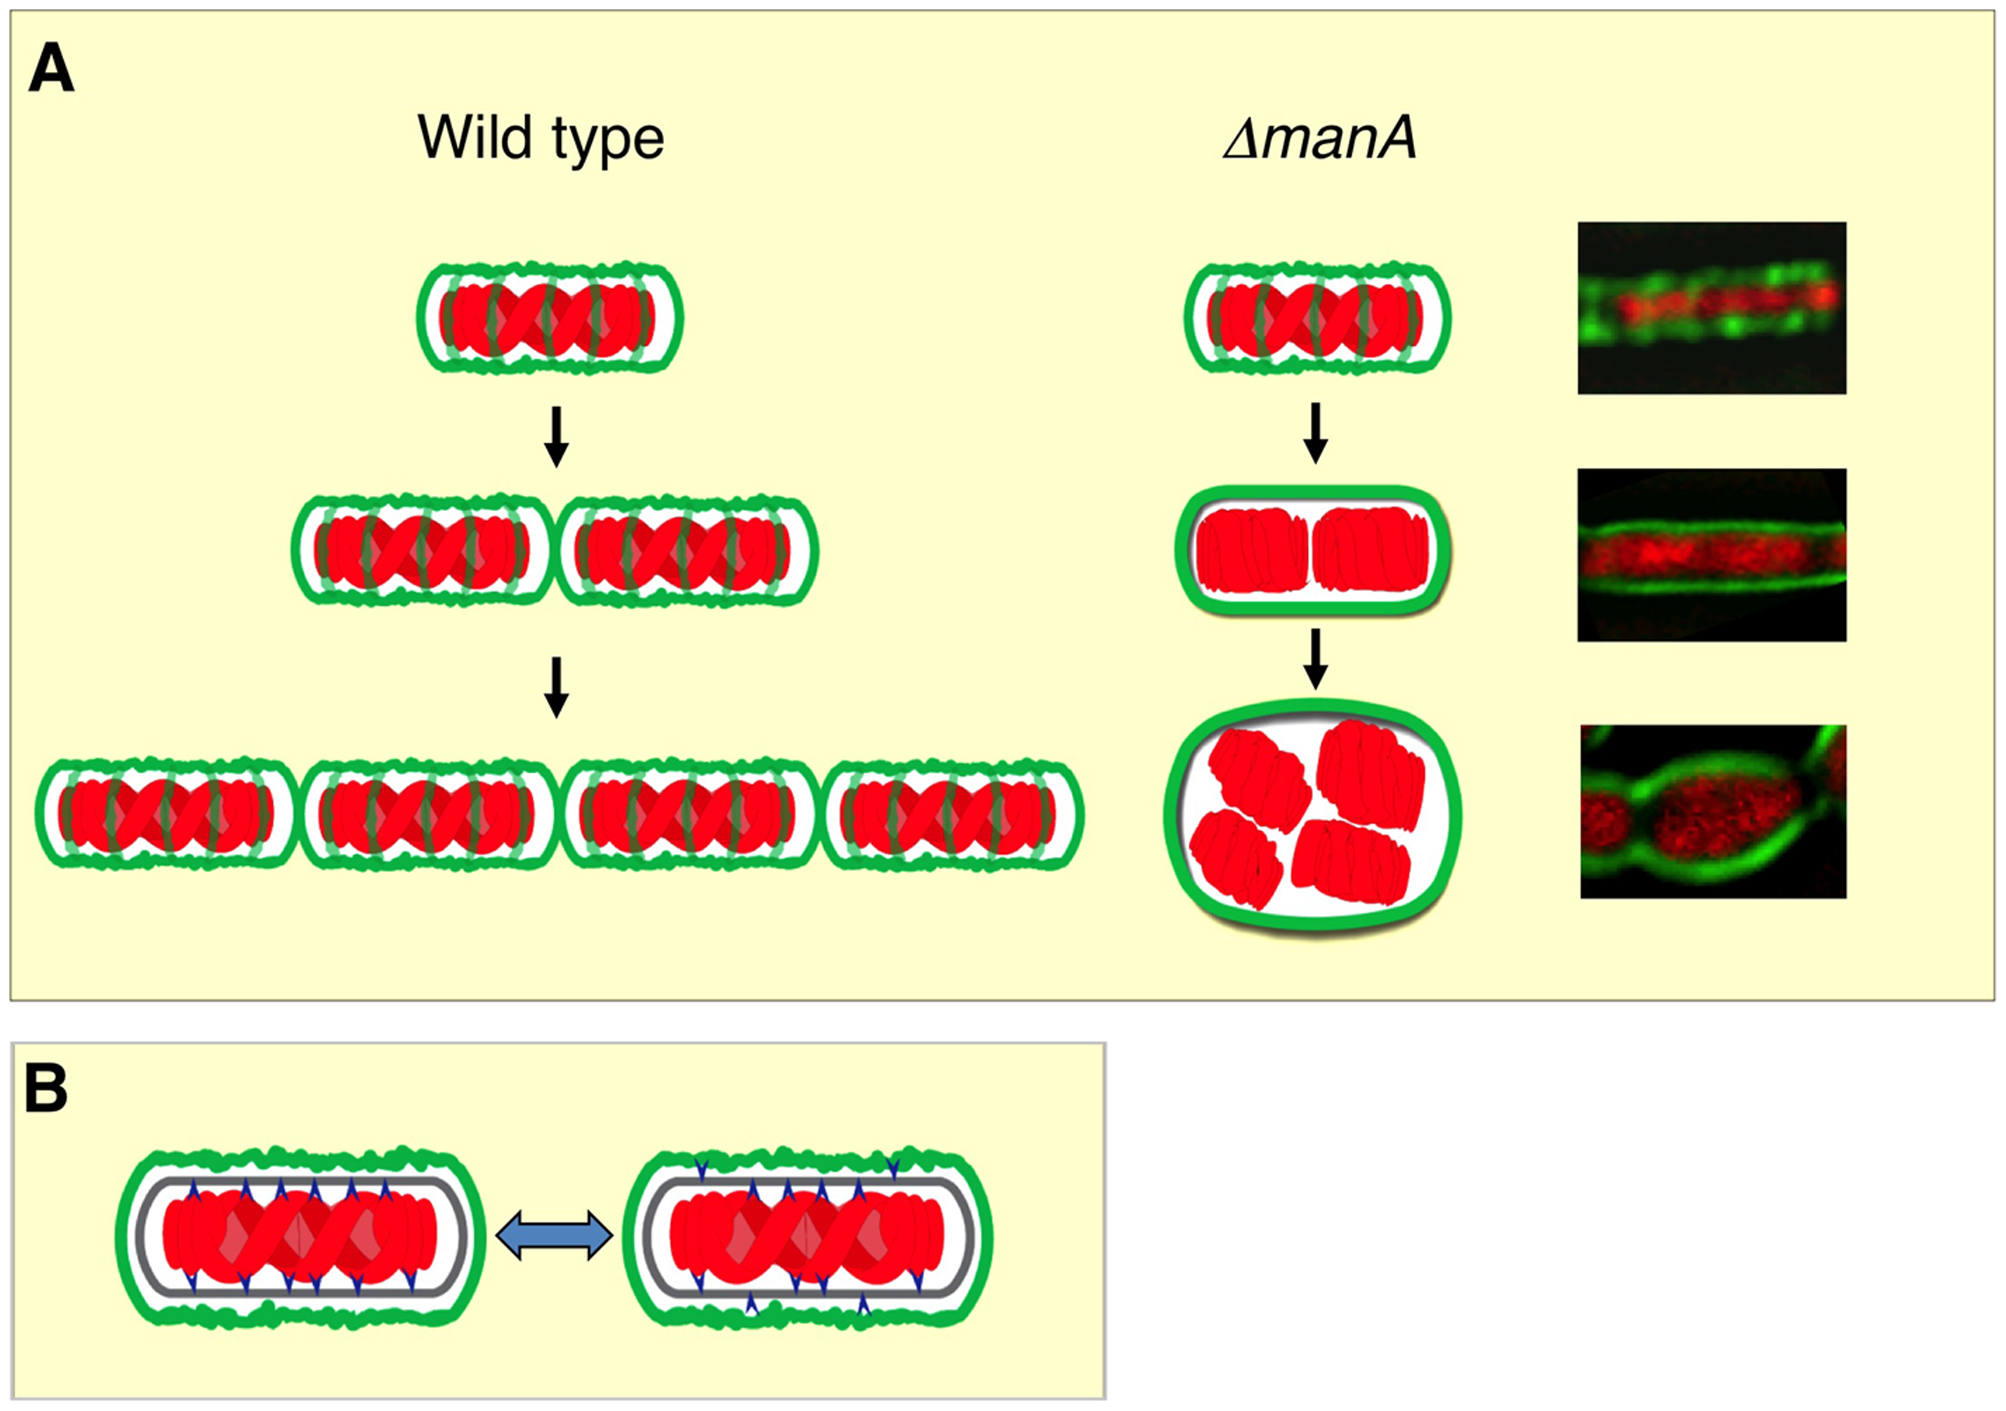 Linking cell wall integrity and chromosome morphology.